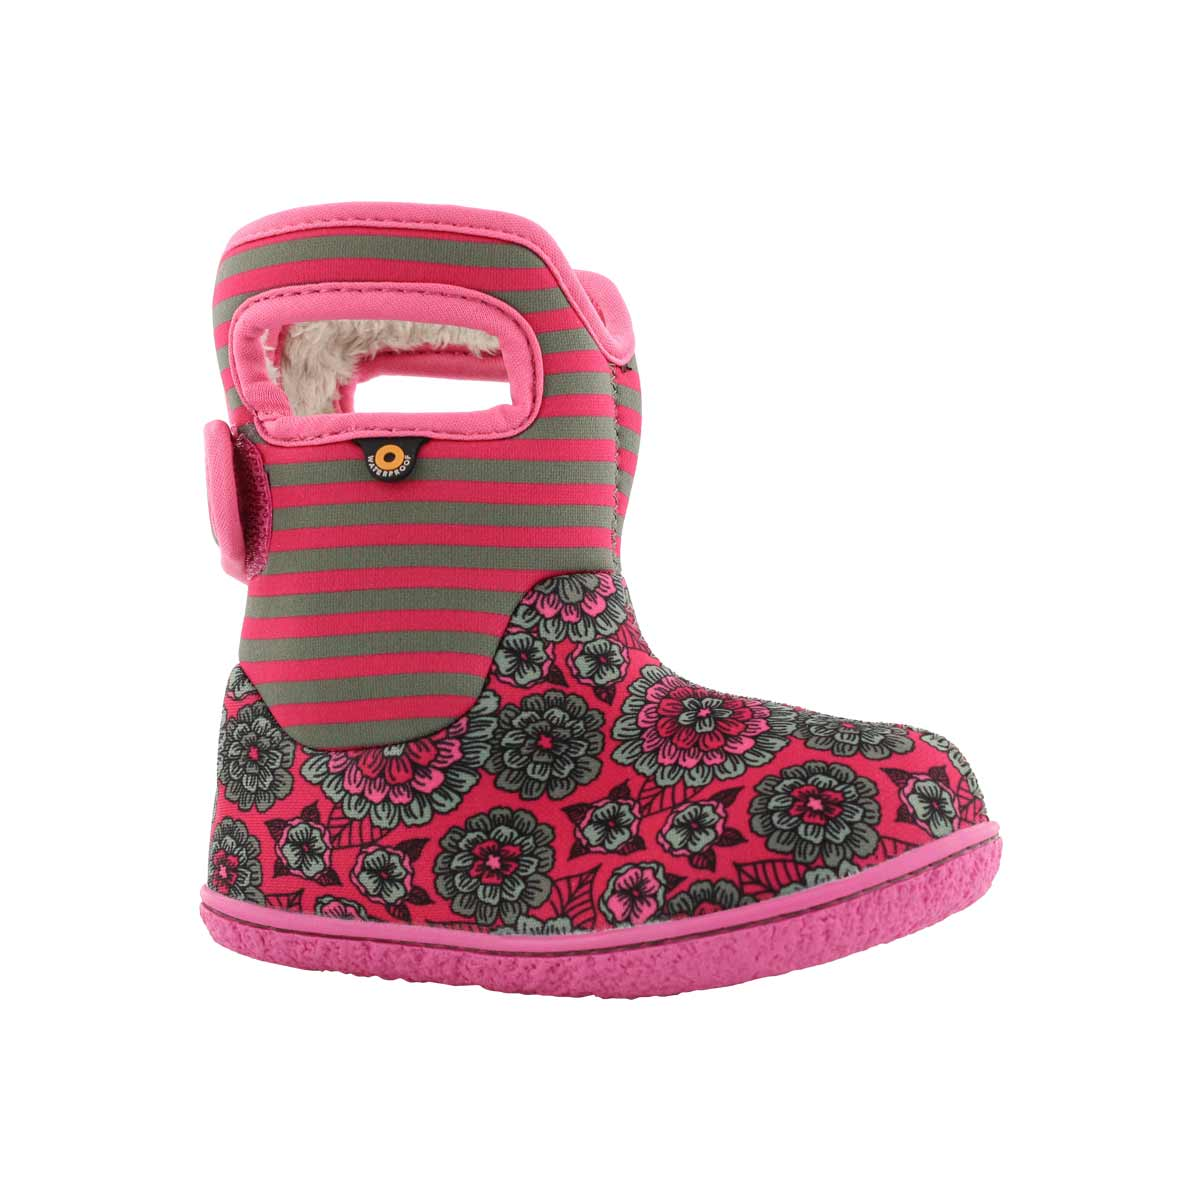 Inf-g Pansy Stripe pink mlt wtpf boot